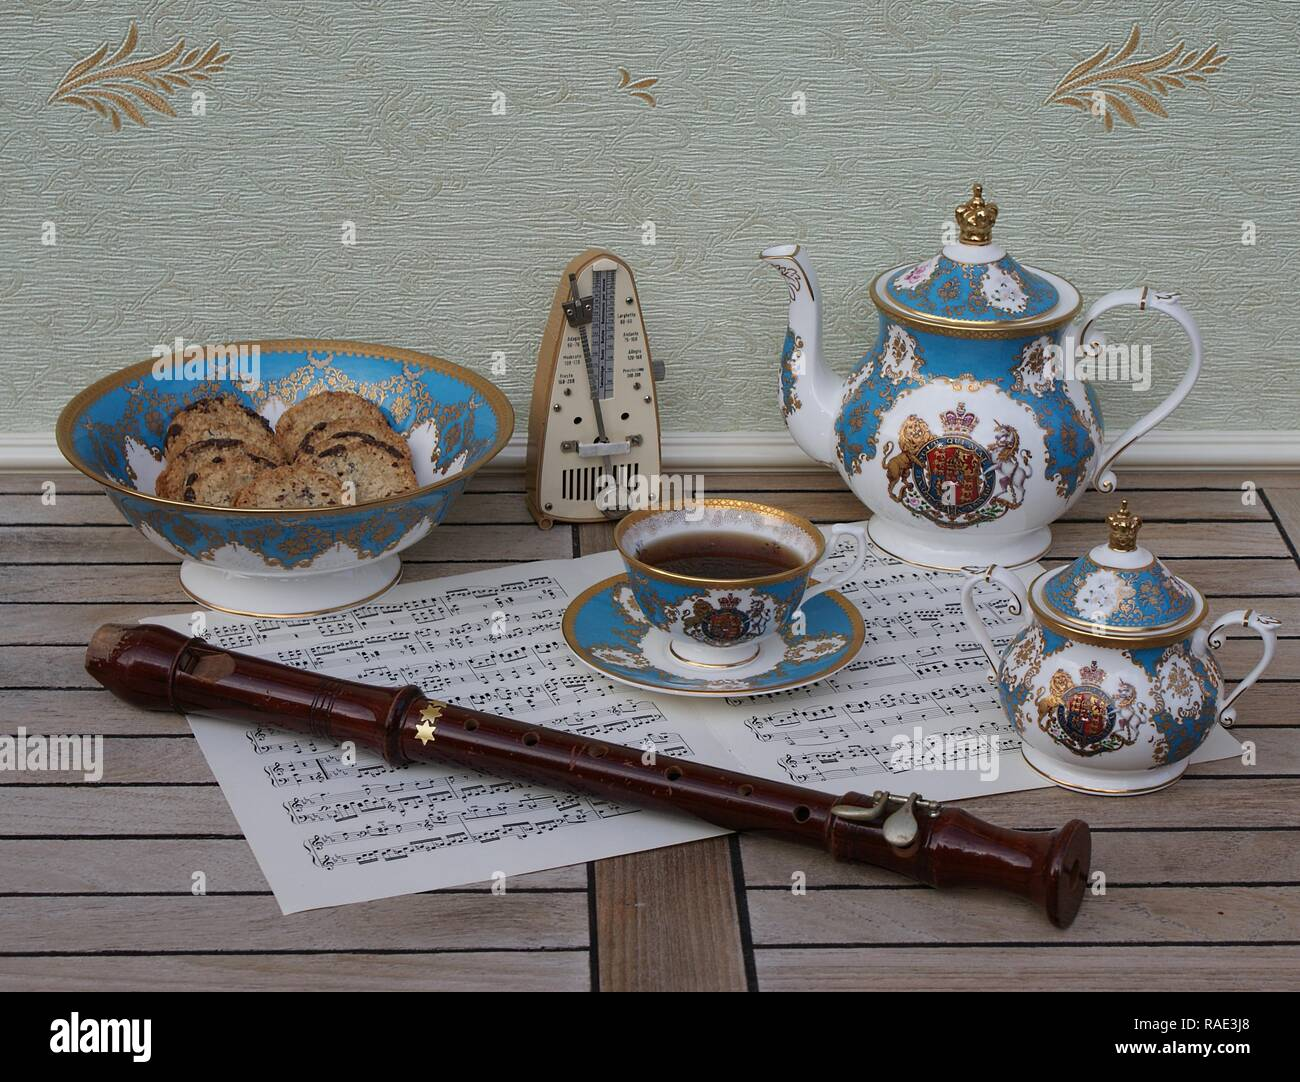 English teacup with saucer, teapot, sugar bowl and a cake bowl with cookies, metronome for music and a block flute on a sheet of music - Stock Image